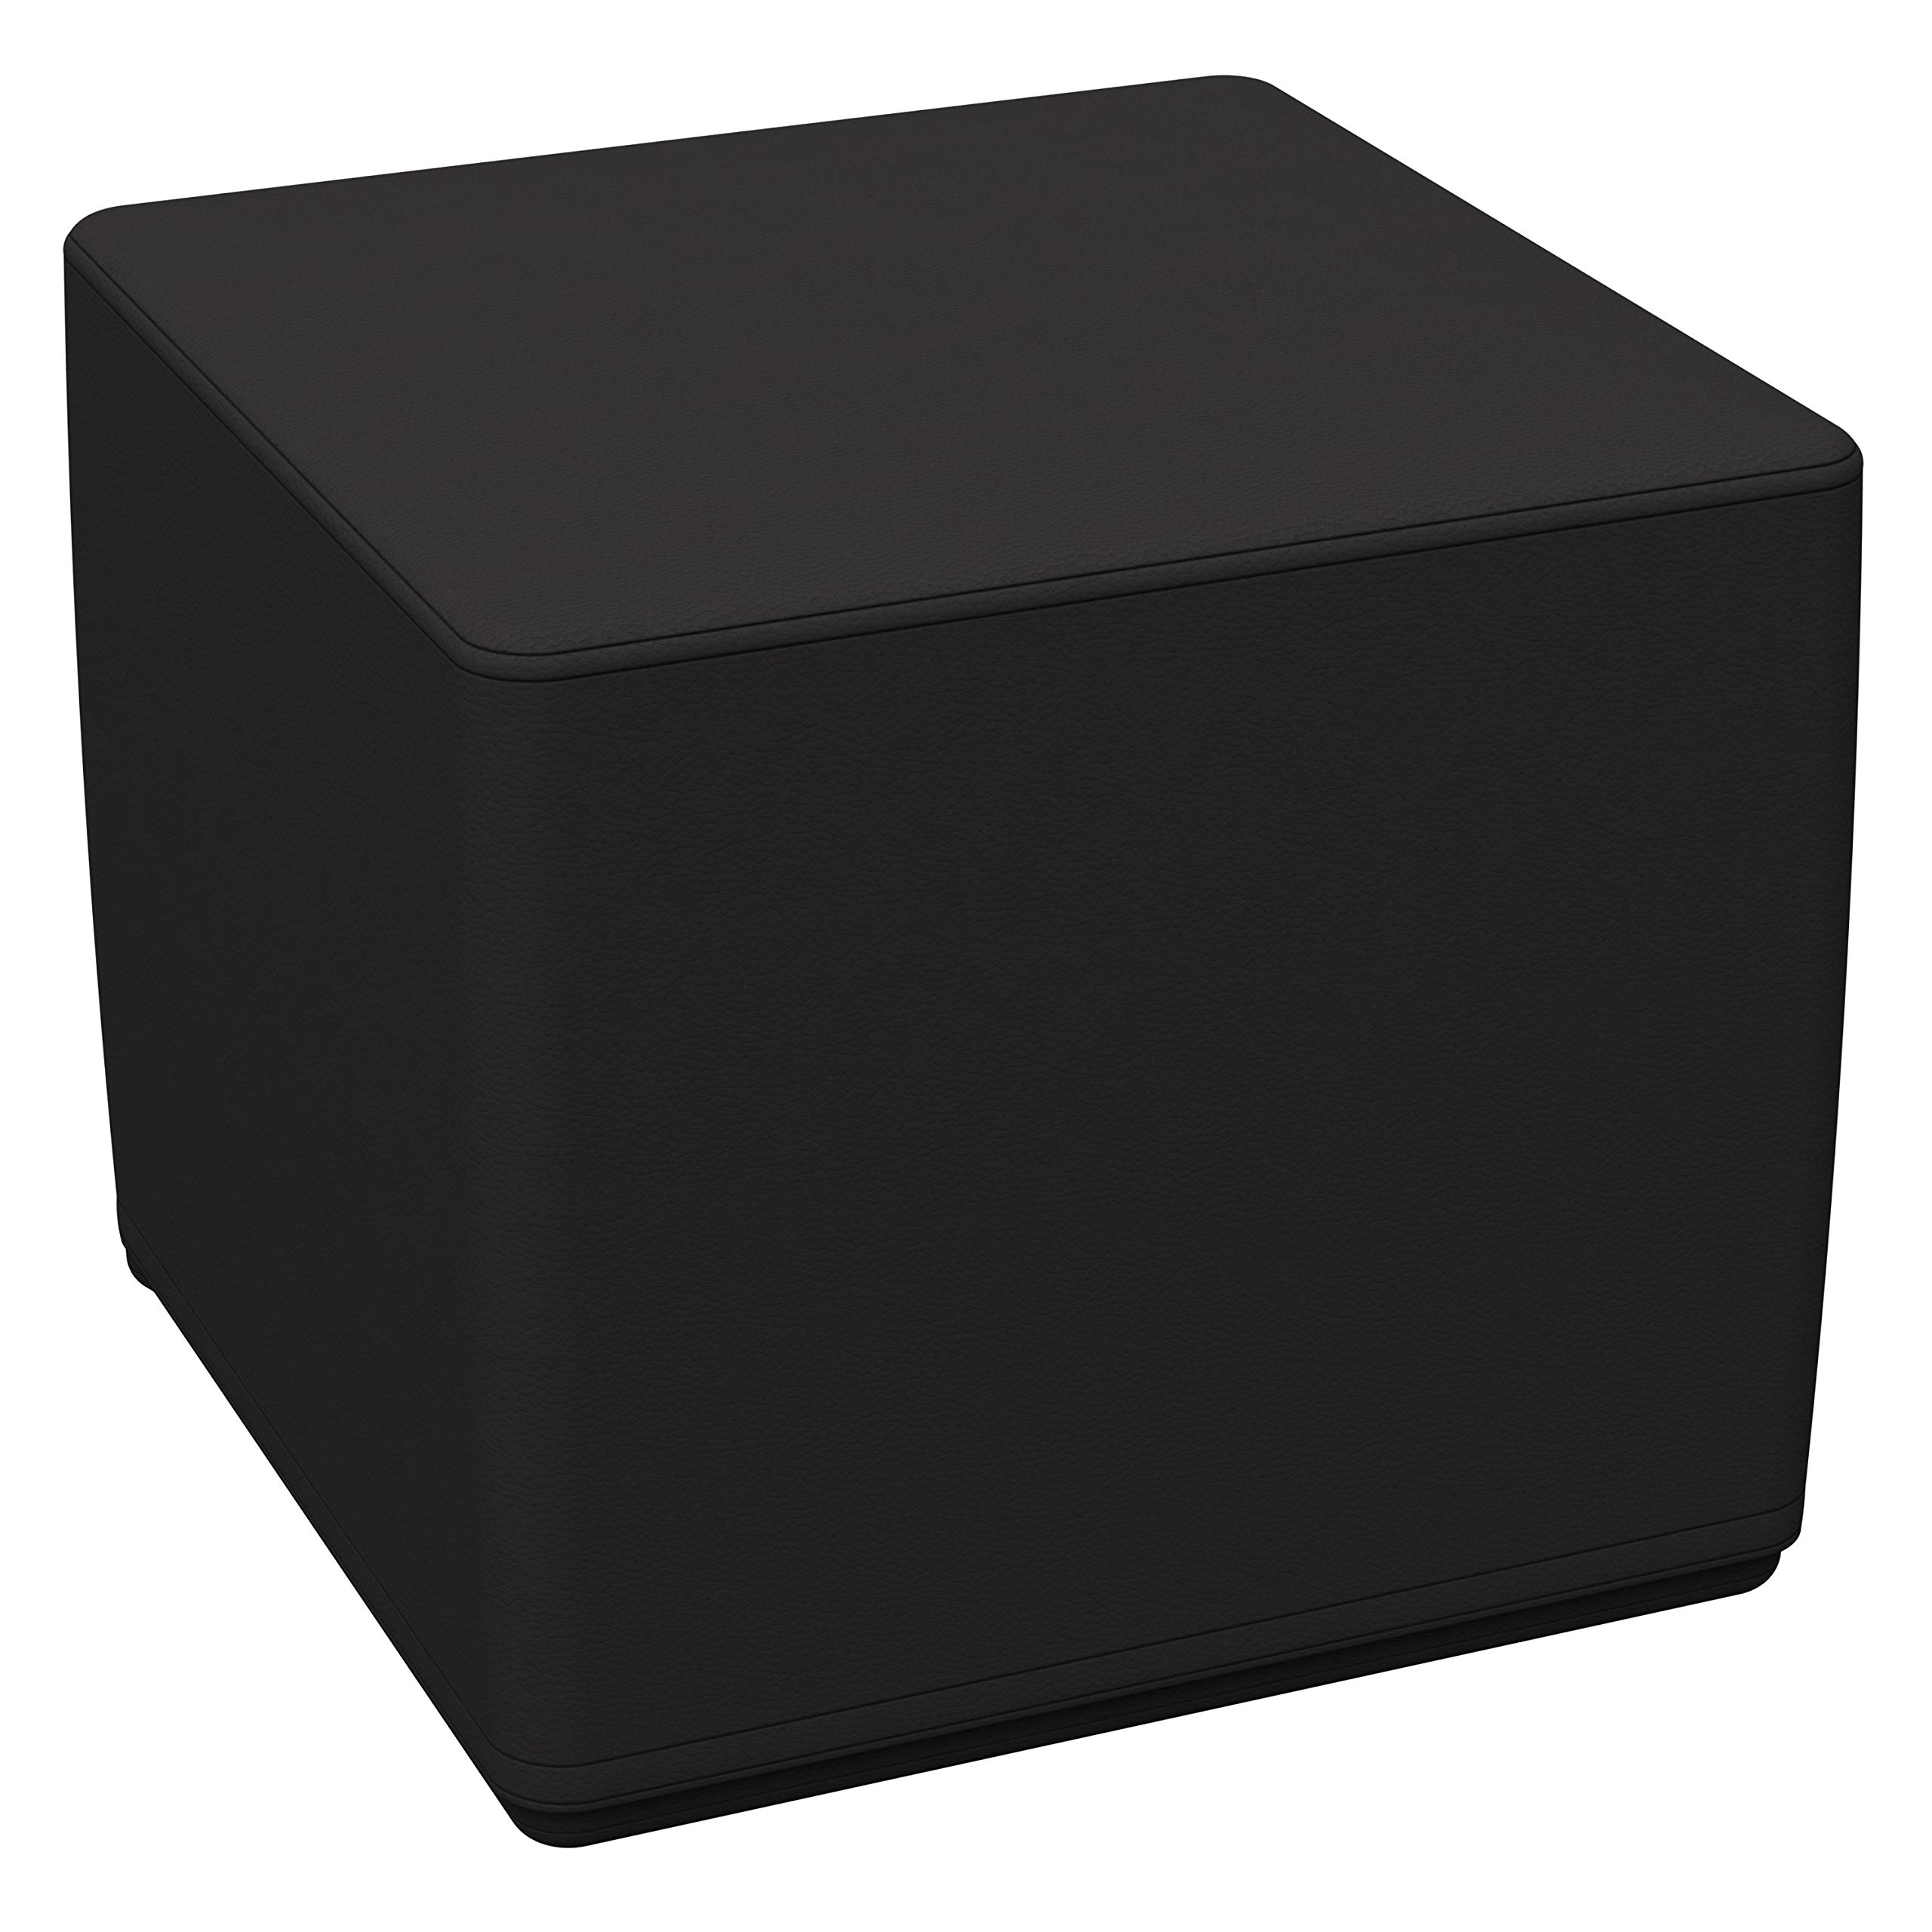 """FDP SoftScape 18"""" Square Ottoman, Collaborative Flexible Seating for Kids, Teens, Adults Furniture for Classrooms, Libraries, Offices and Home, Standard 16"""" H - Black"""